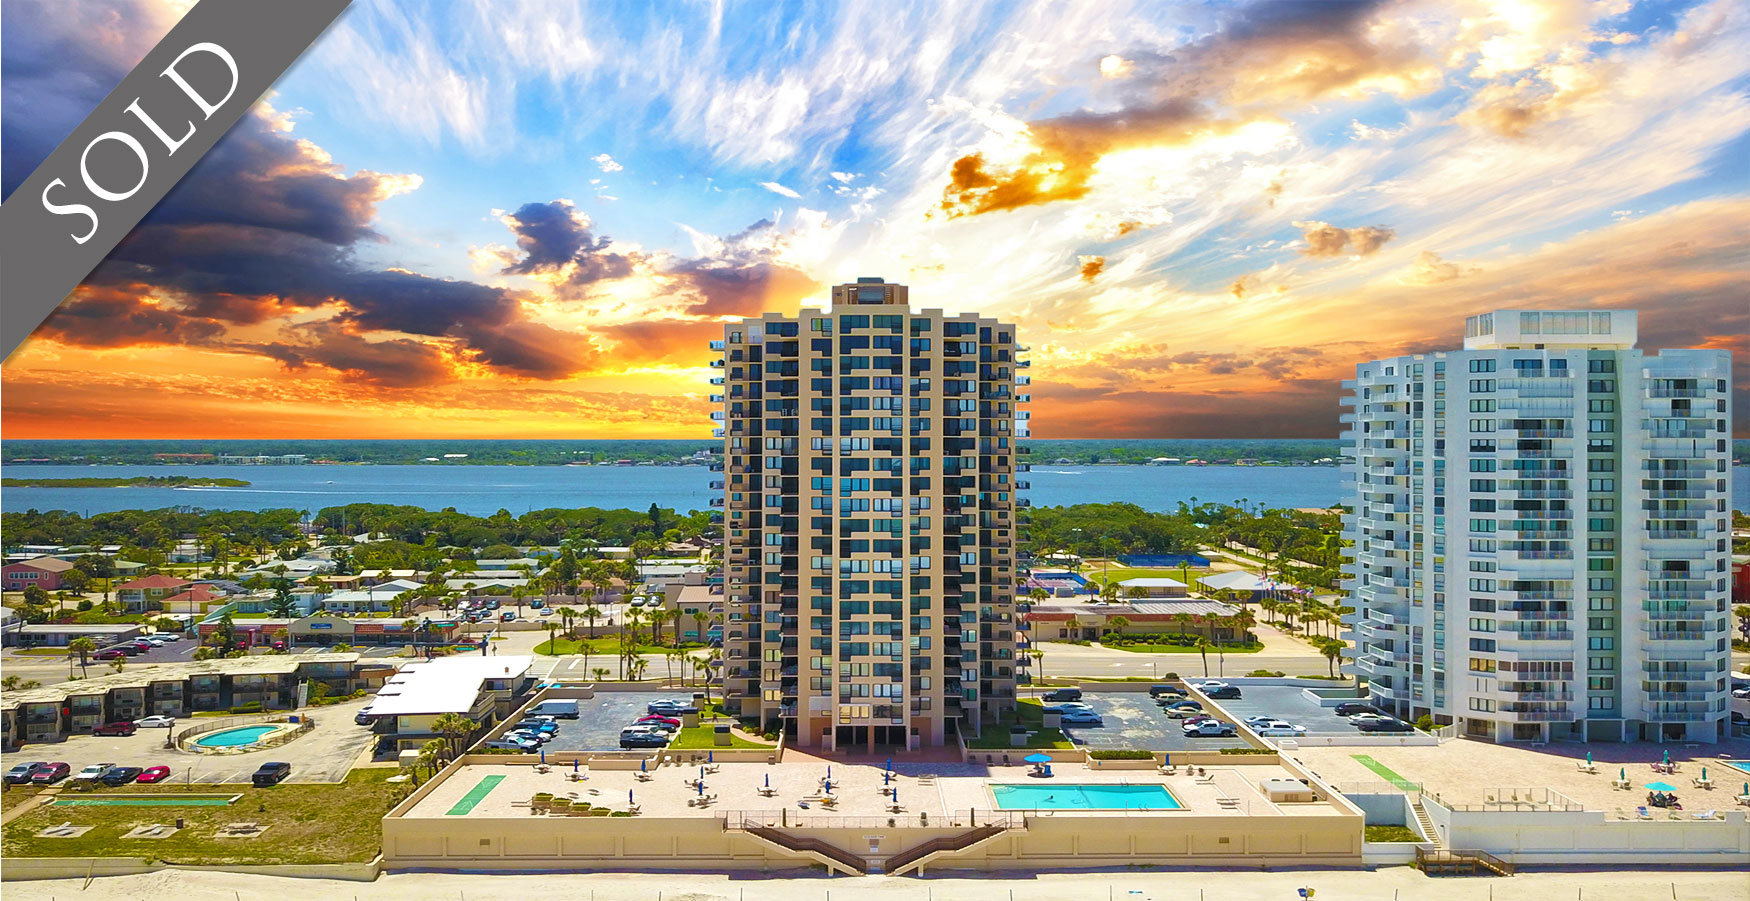 Oceans One Condos For Sale Oceanfront Real Estate at 3051 S Atlantic Ave Daytona Beach Shores, FL  Sold